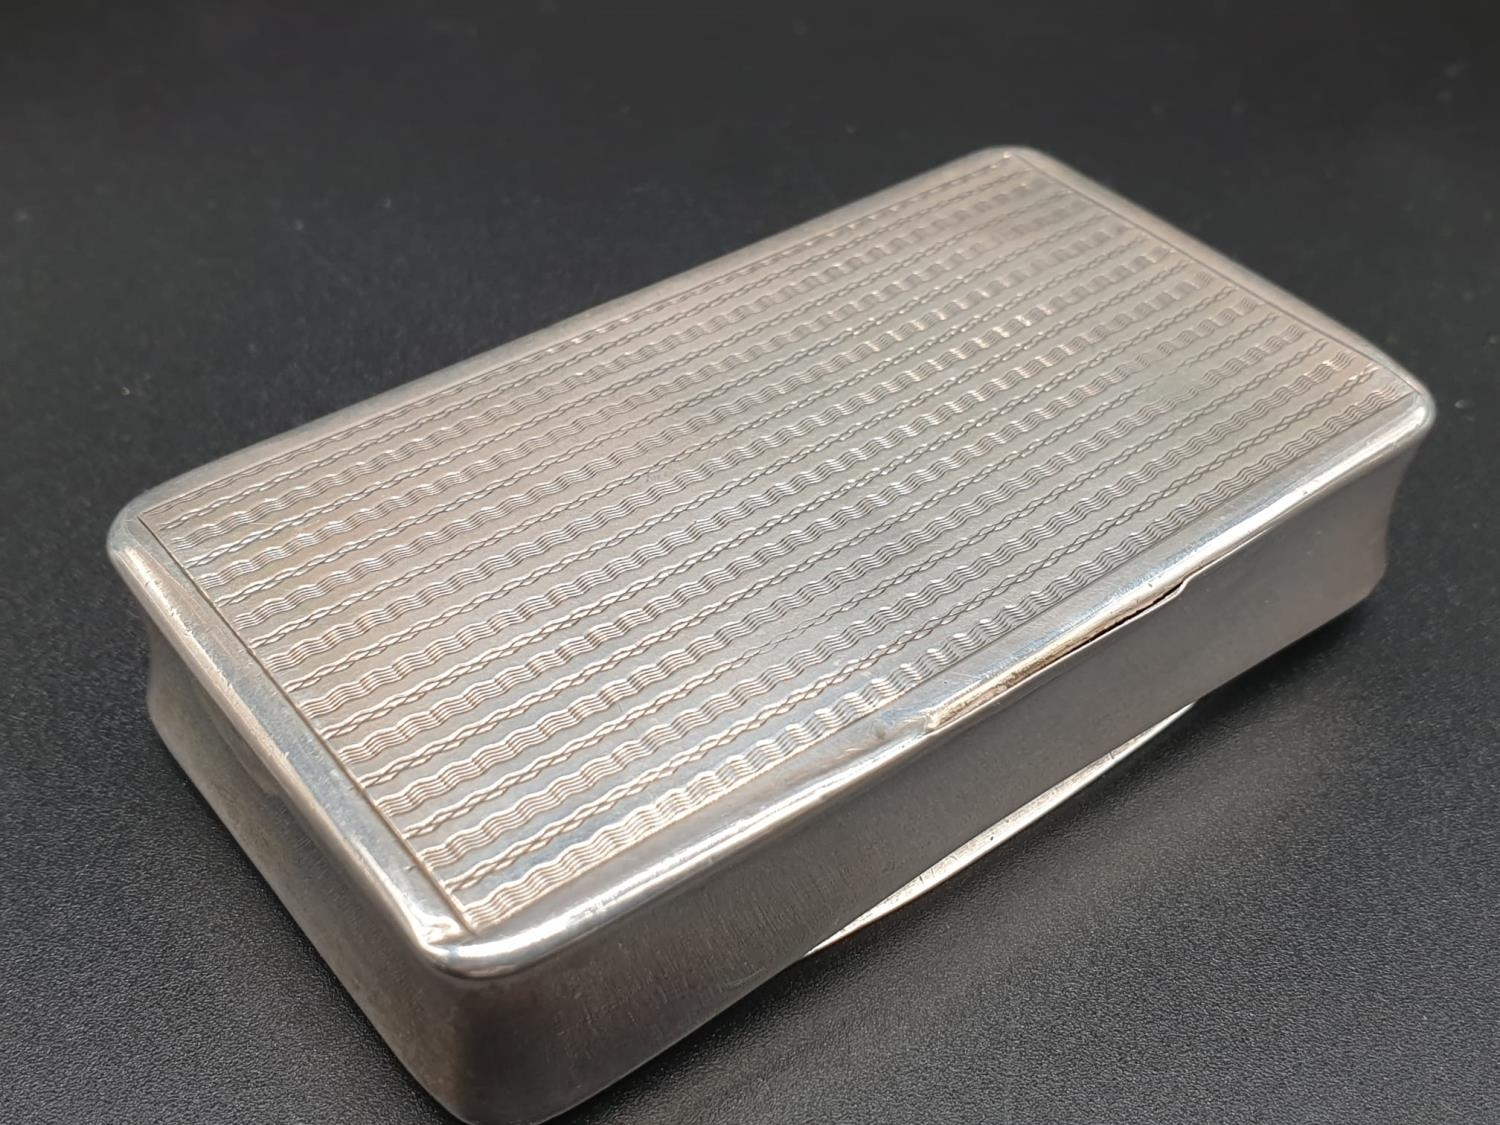 Antique French Gilt Solid Silver 1880s Snuff Box. 7.8cm x 4.5. 54.5g - Image 7 of 9